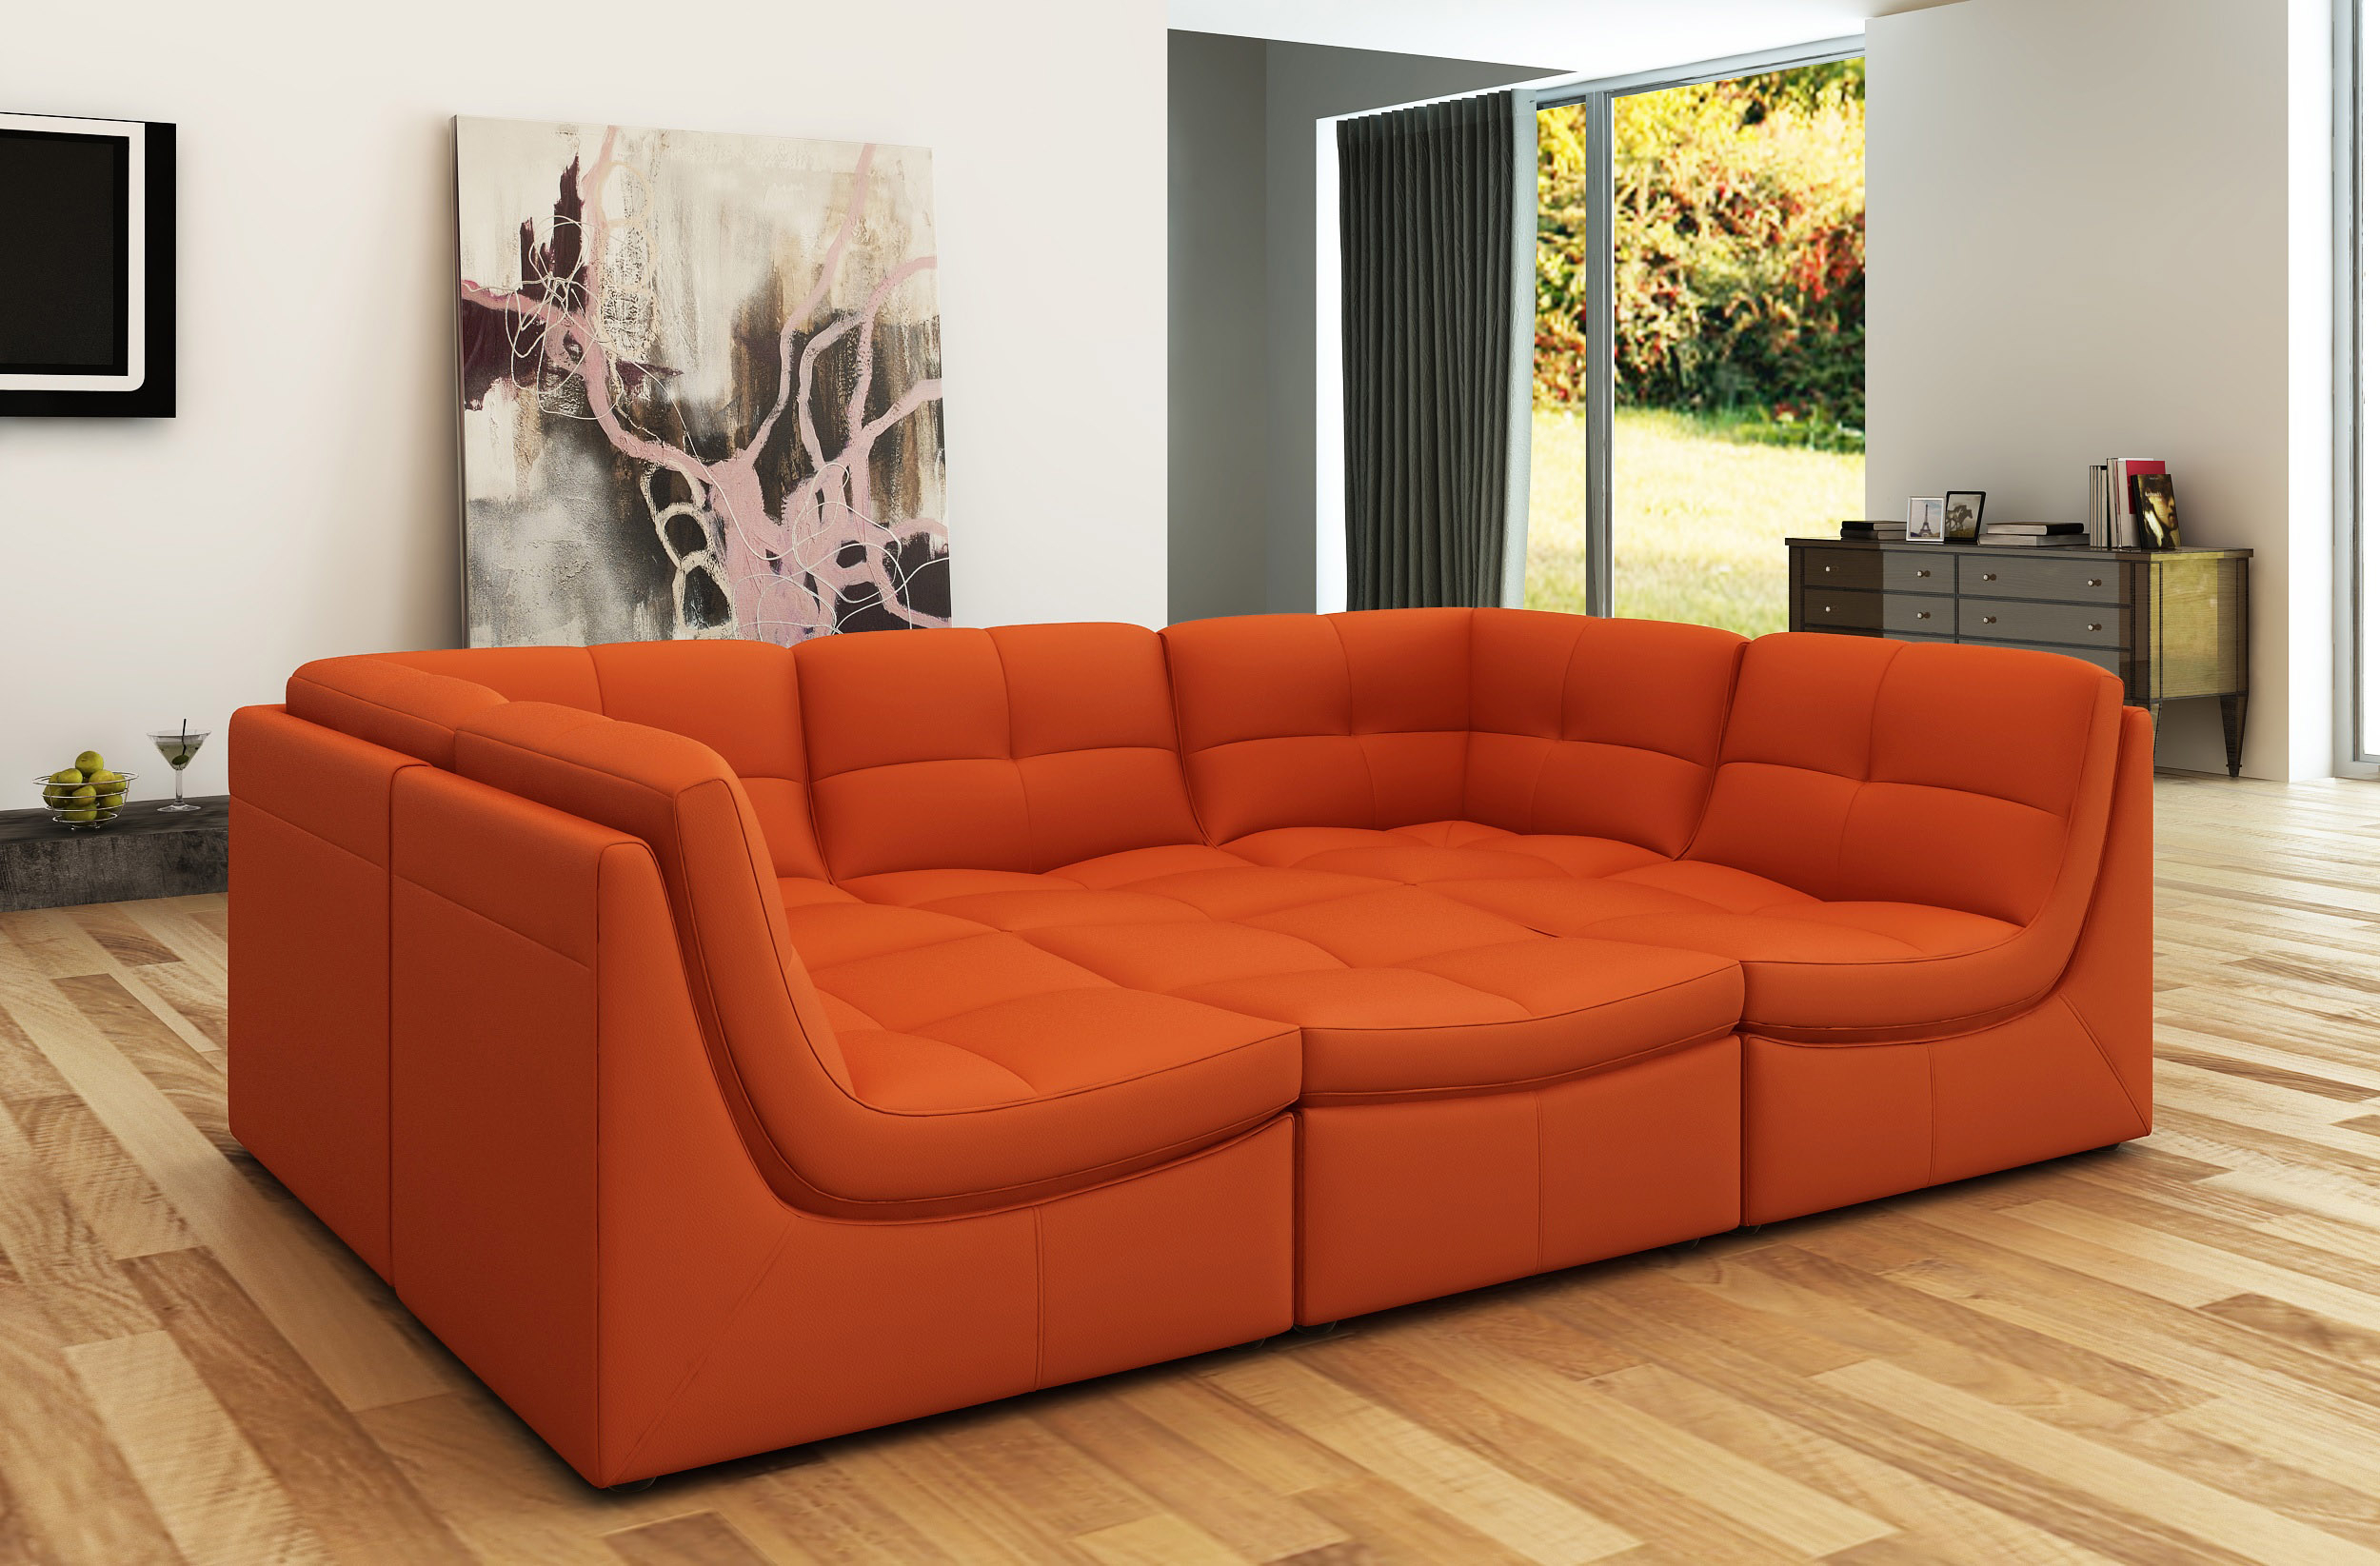 Elegant Tufted Leather Curved Corner Sofa Des Moines Iowa In Elegant Sectional Sofas (View 13 of 15)